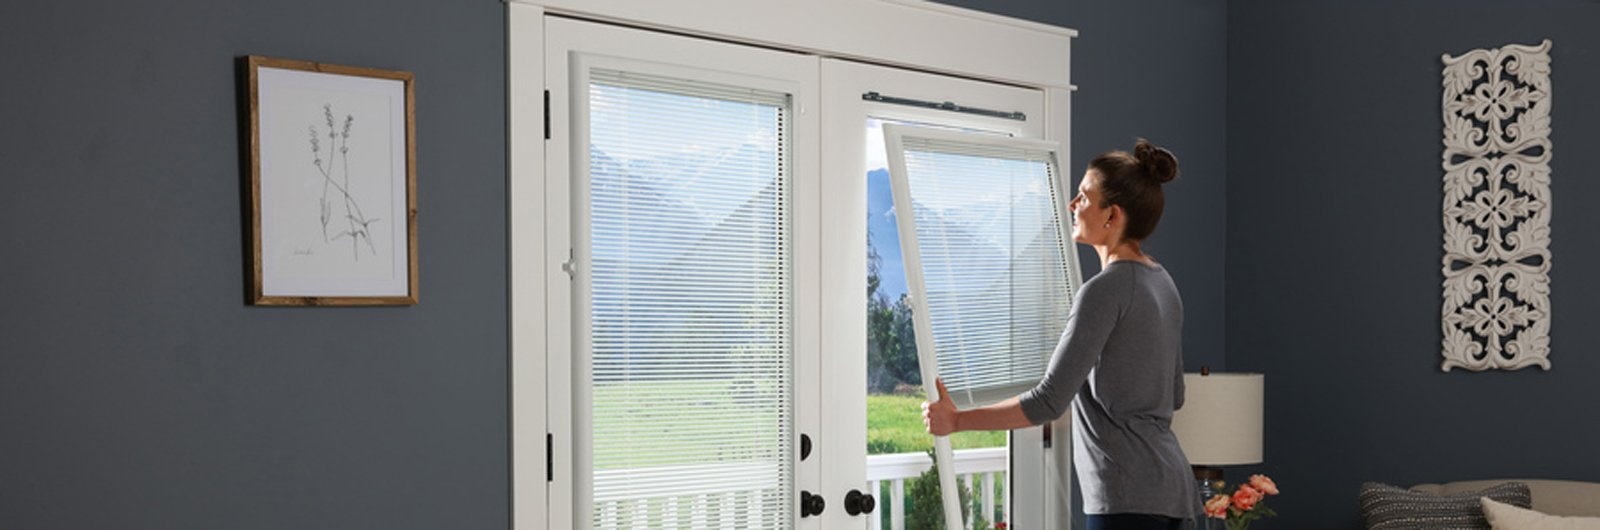 Patio Doors With Built In Blinds odl enclosed blinds, add-on blinds built in, patio door blinds